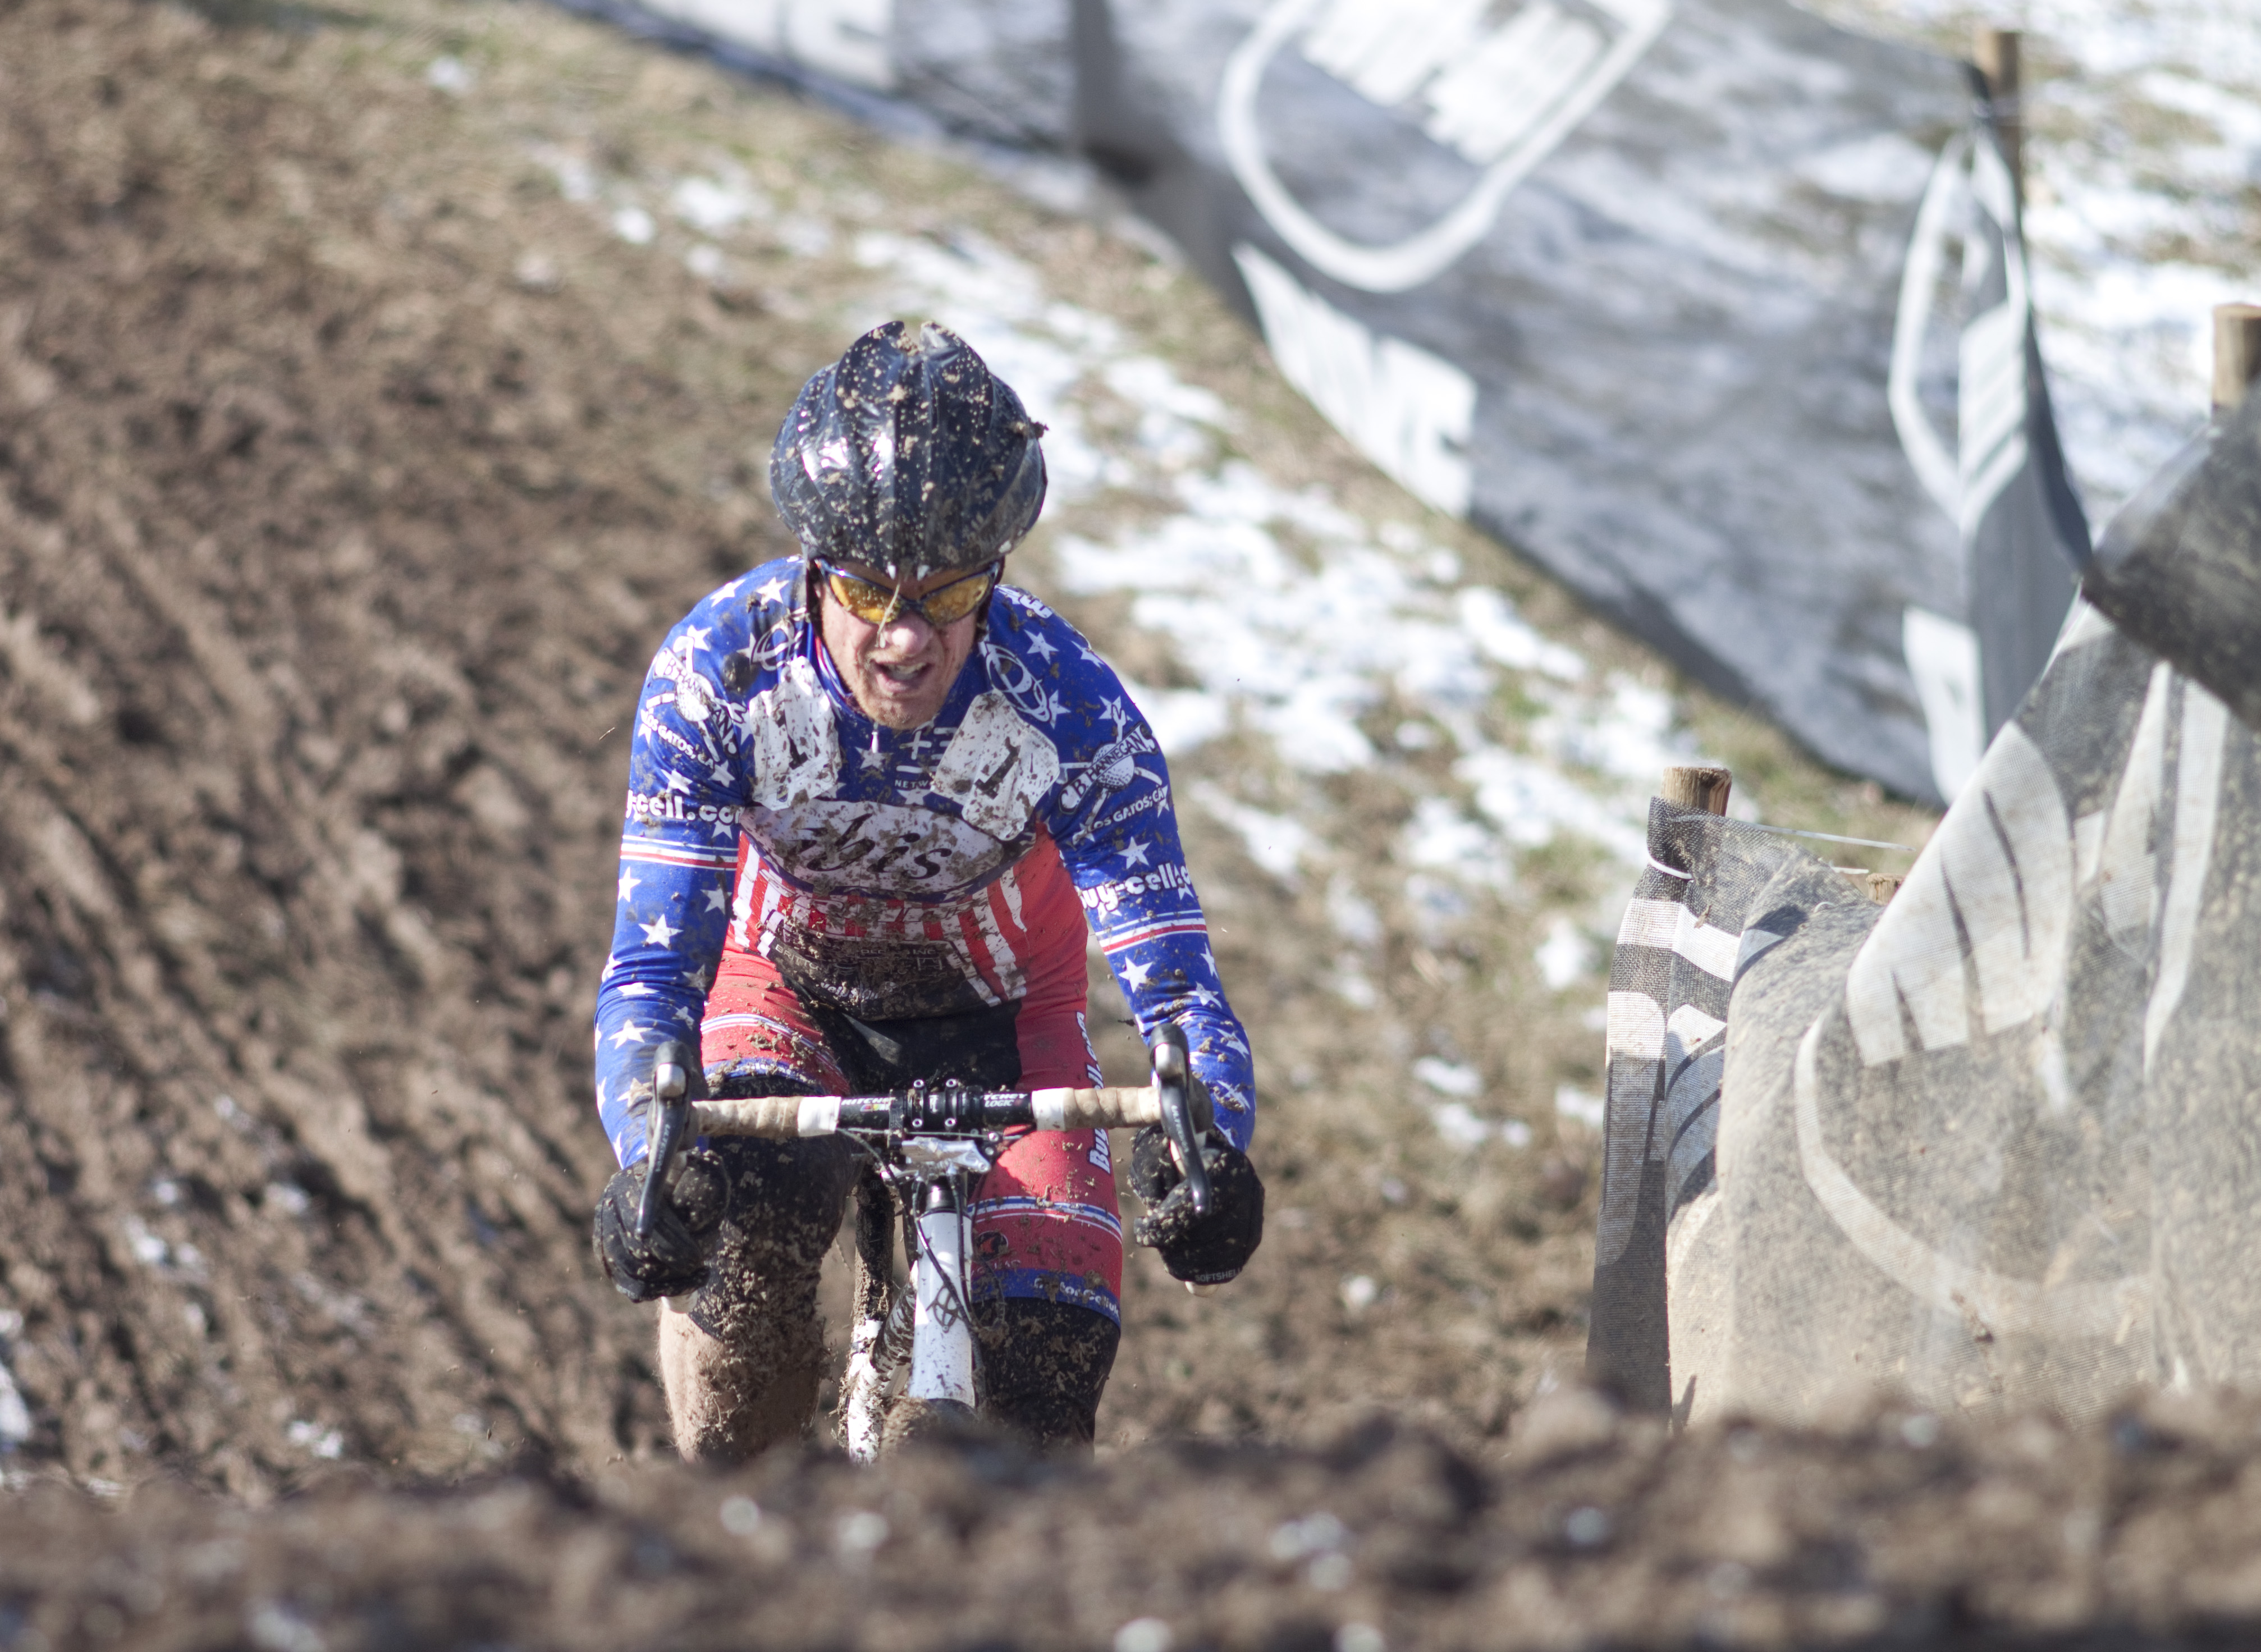 National Champion Don Myrah powers up the hill at the 2013 Cyclocross World Championships, Masters 45-49. © Cyclocross Magazine